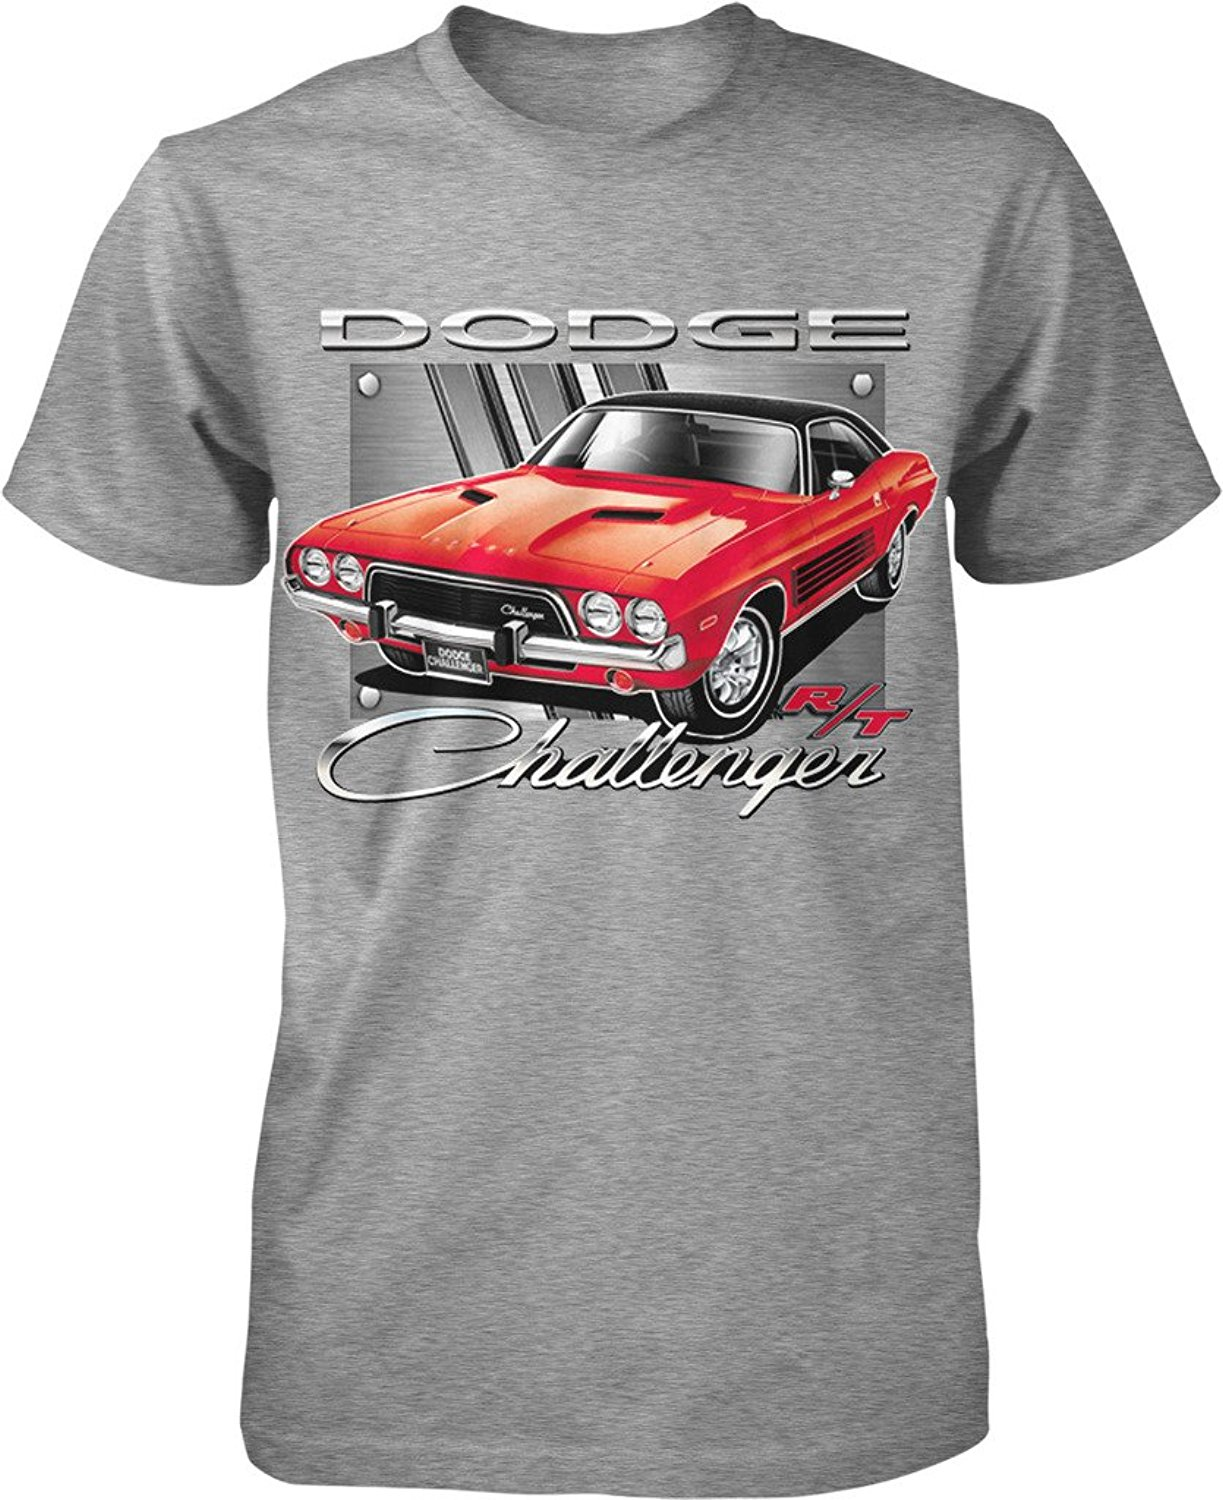 2018 Short Sleeve Cotton T Shirts Man Clothing Dodge Challenger R/T, American Muscle Mens 100% Cotton T-shirt